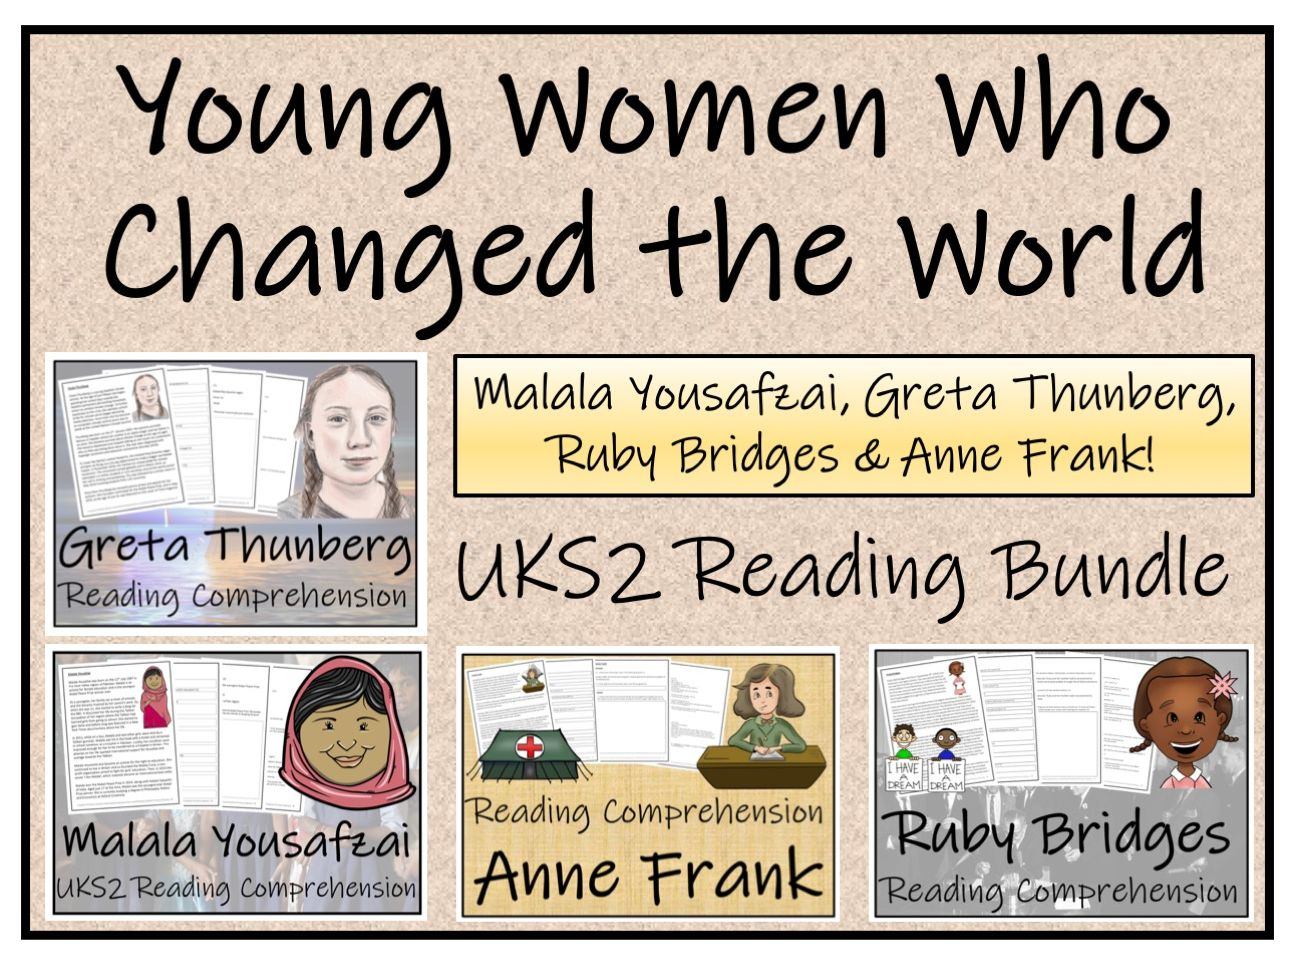 UKS2 Young Women Who Changed the World Reading Comprehension Bundle